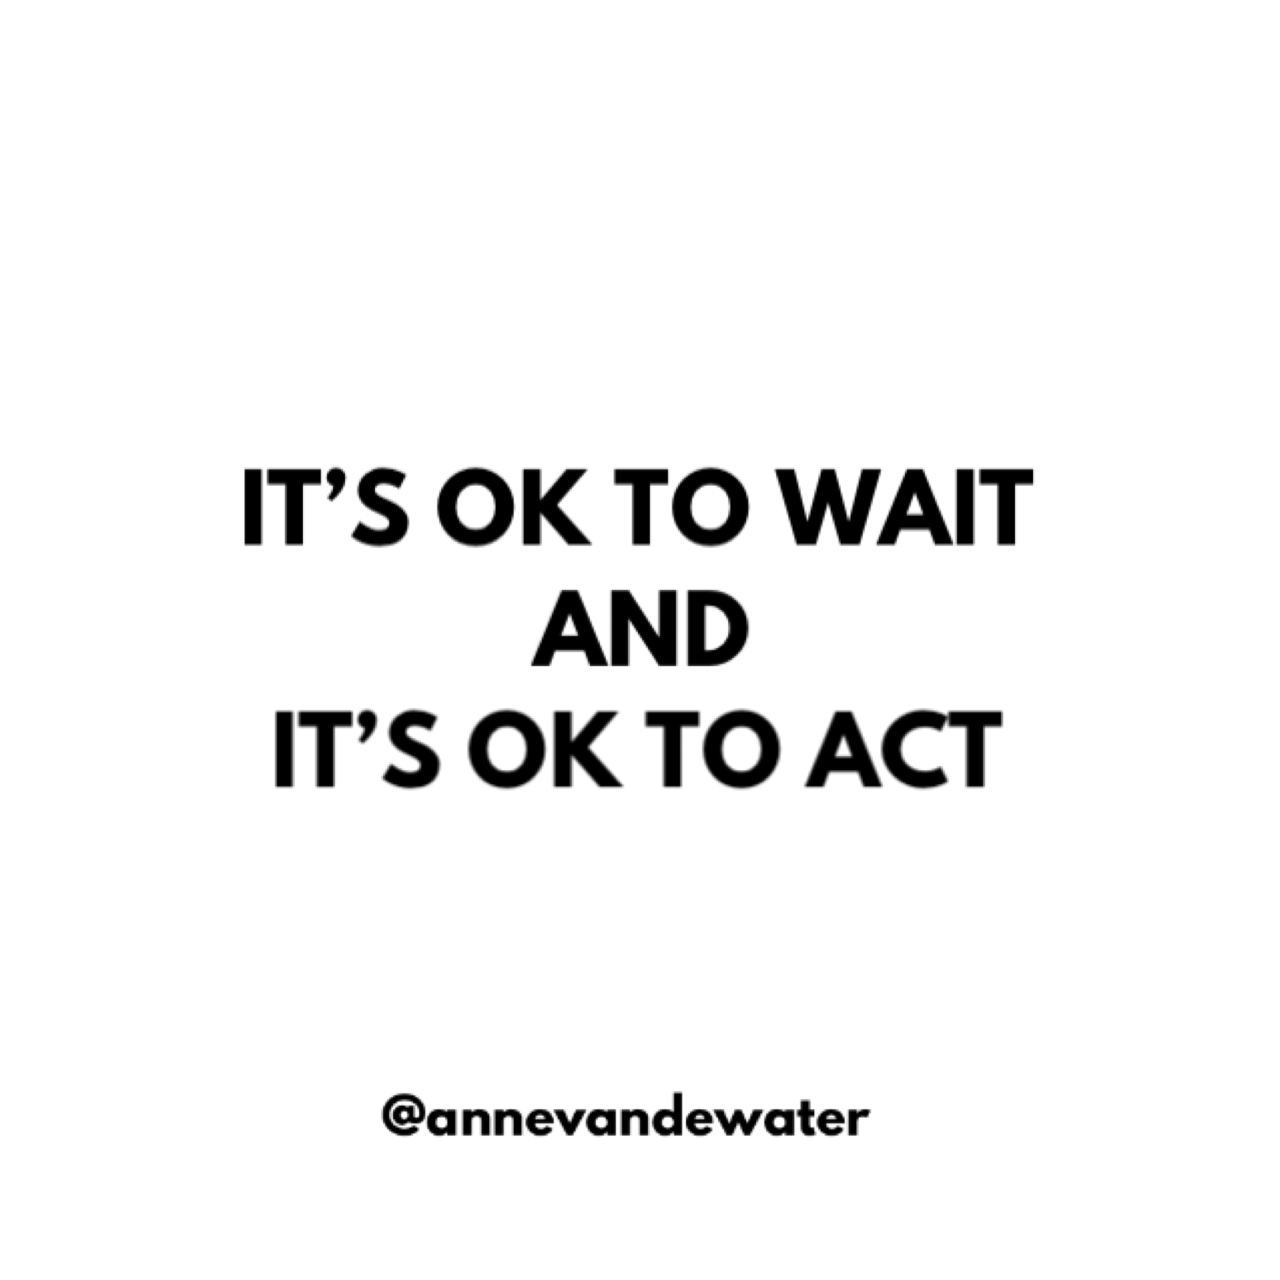 IT'S OK TO WAIT AND IT'S OK TO ACT